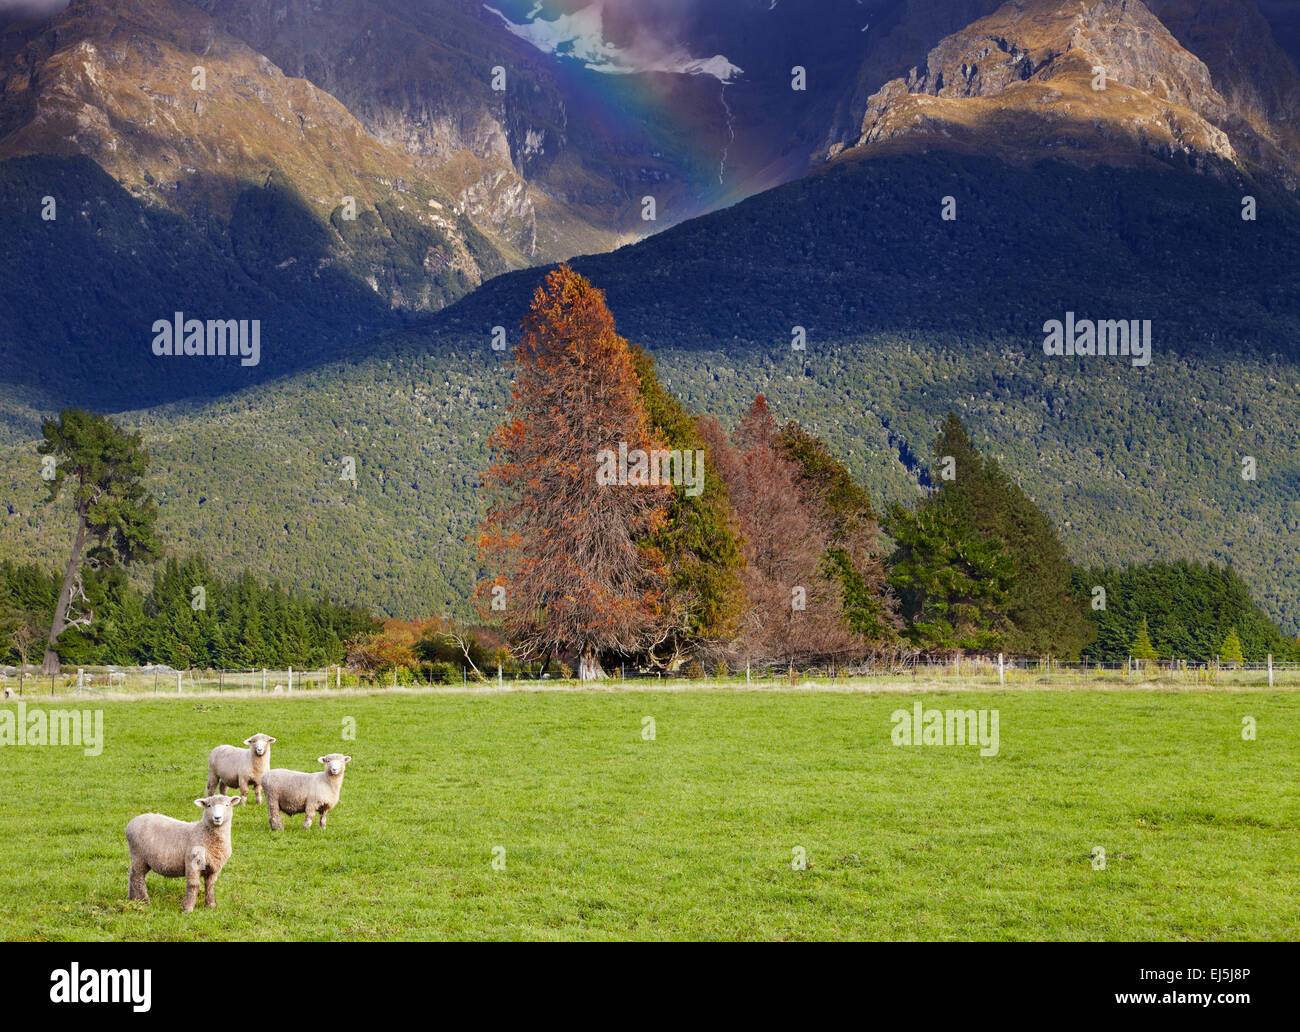 Mountain landscape with forest and grazing sheep, South Island, New Zealand - Stock Image